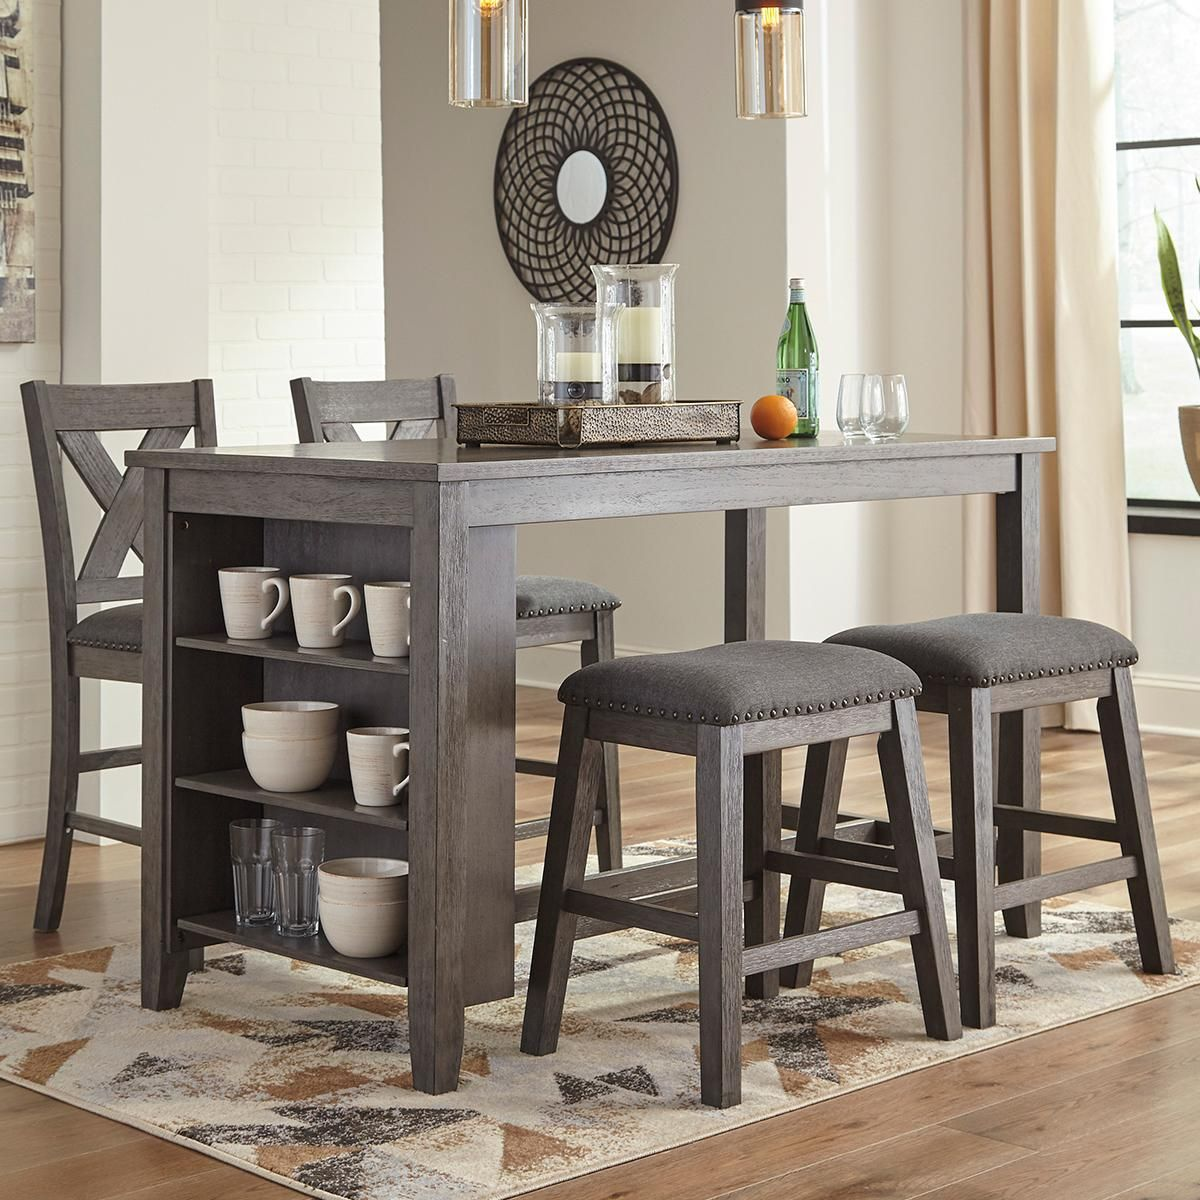 Signature Design By Ashley Caitbrook 5 Piece Counter Height Dining Set In Antiqued Gray Wash Nfm In 2021 Dining Table With Storage Dining Room Cozy Counter Height Dining Room Tables